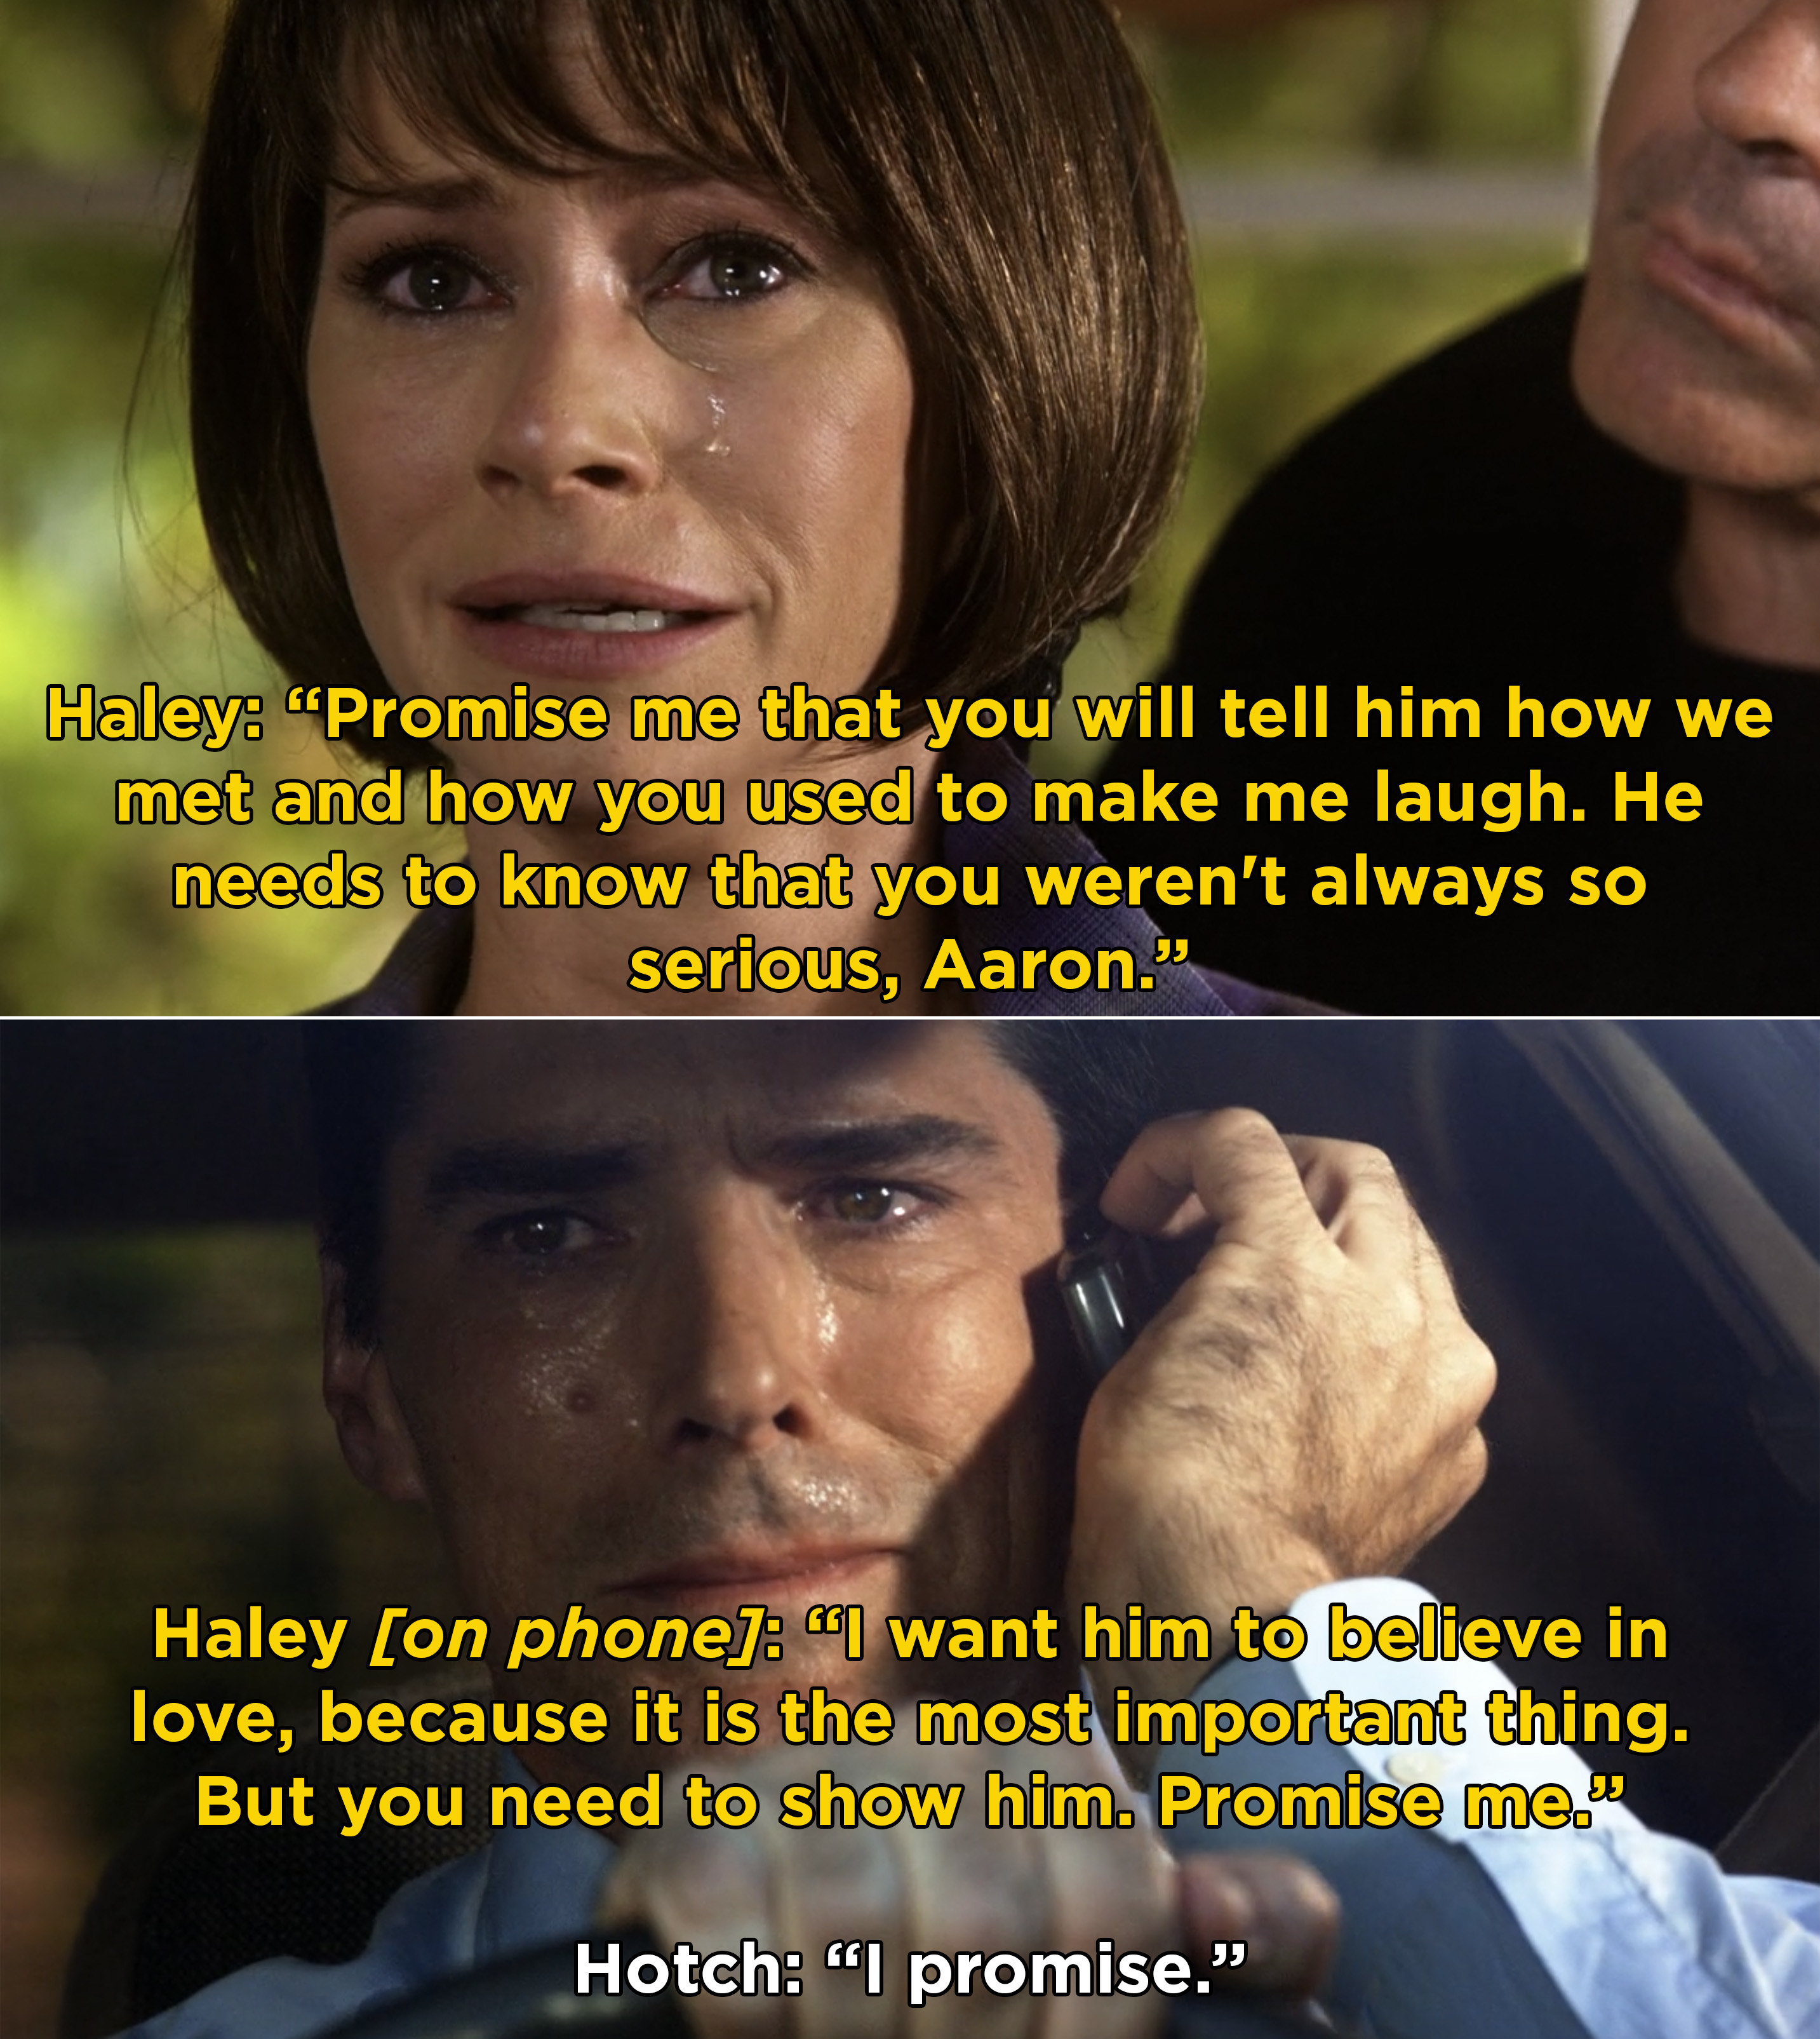 Haley telling Hotch to take care of their son and make sure he believes in love